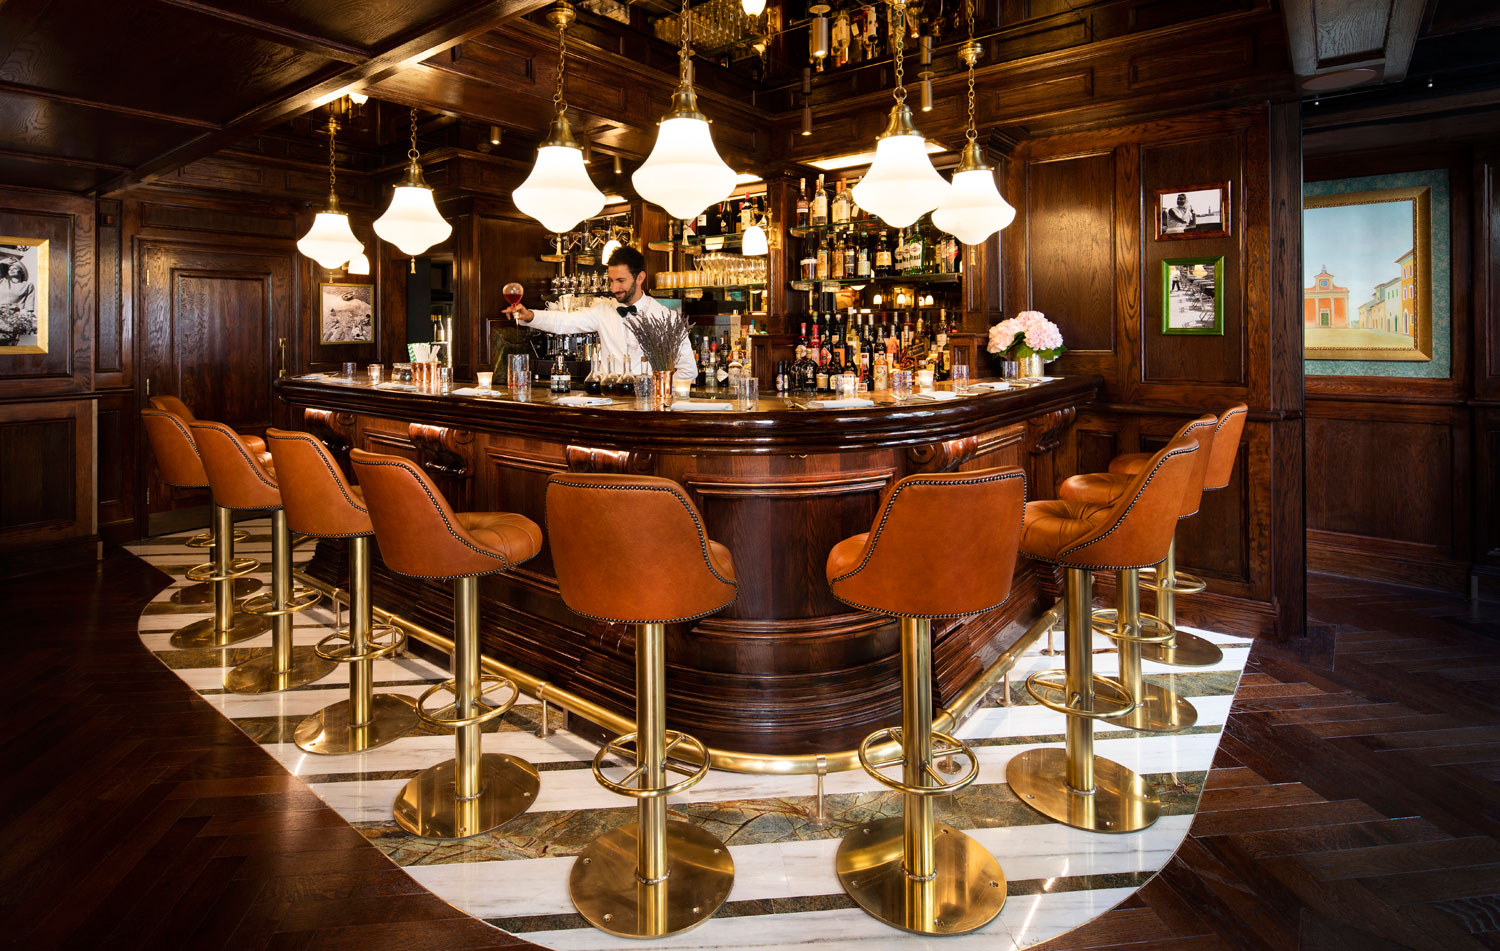 orange stool white marble bar chandeliers